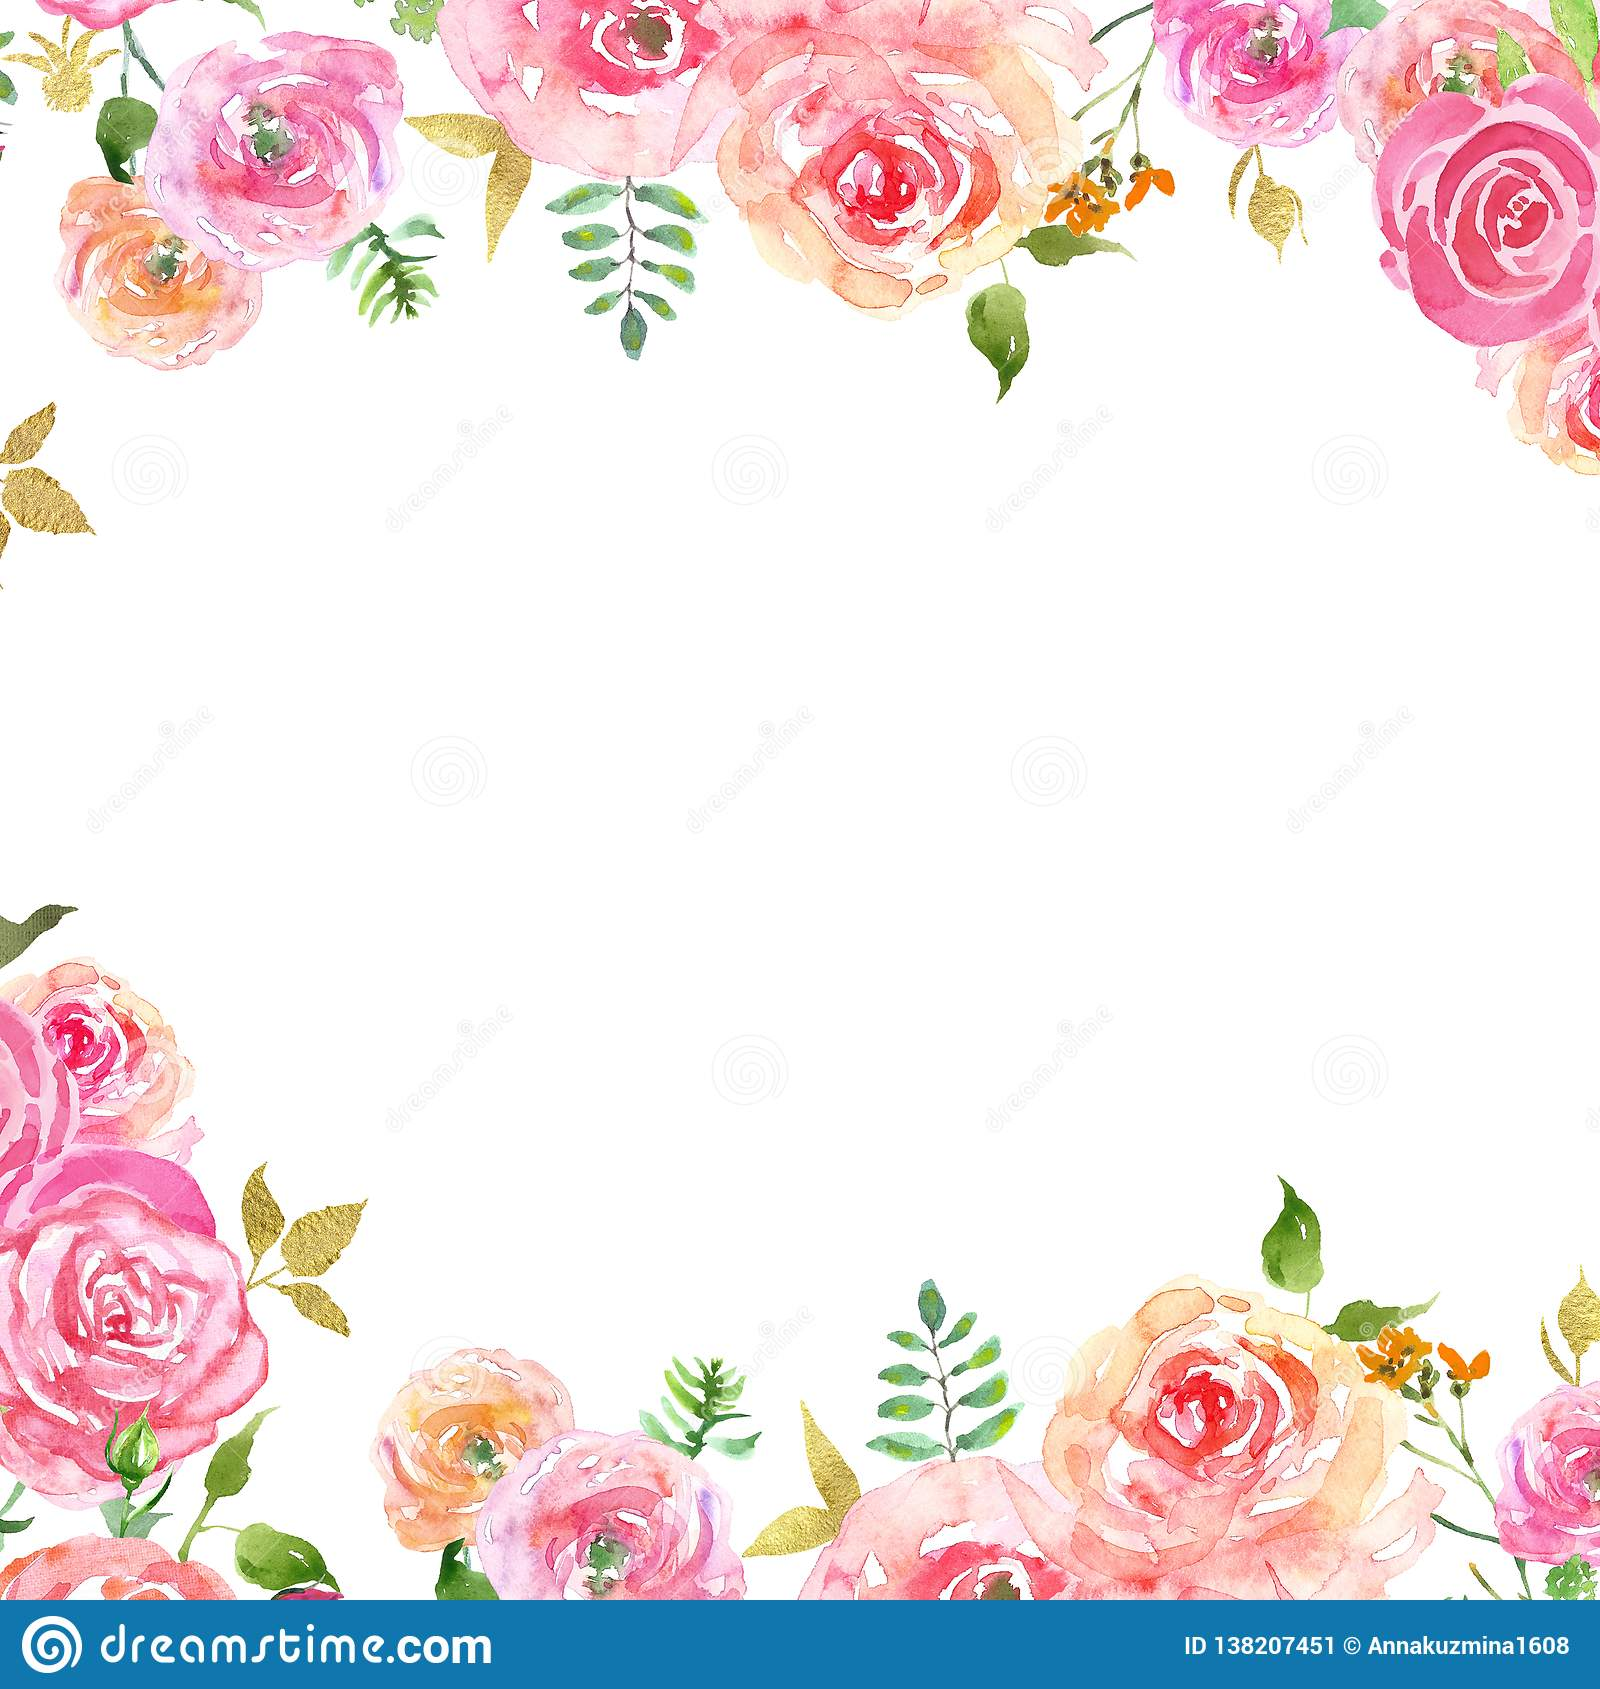 Watercolor Spring Floral Frame With Blush Pink Petals And Gold